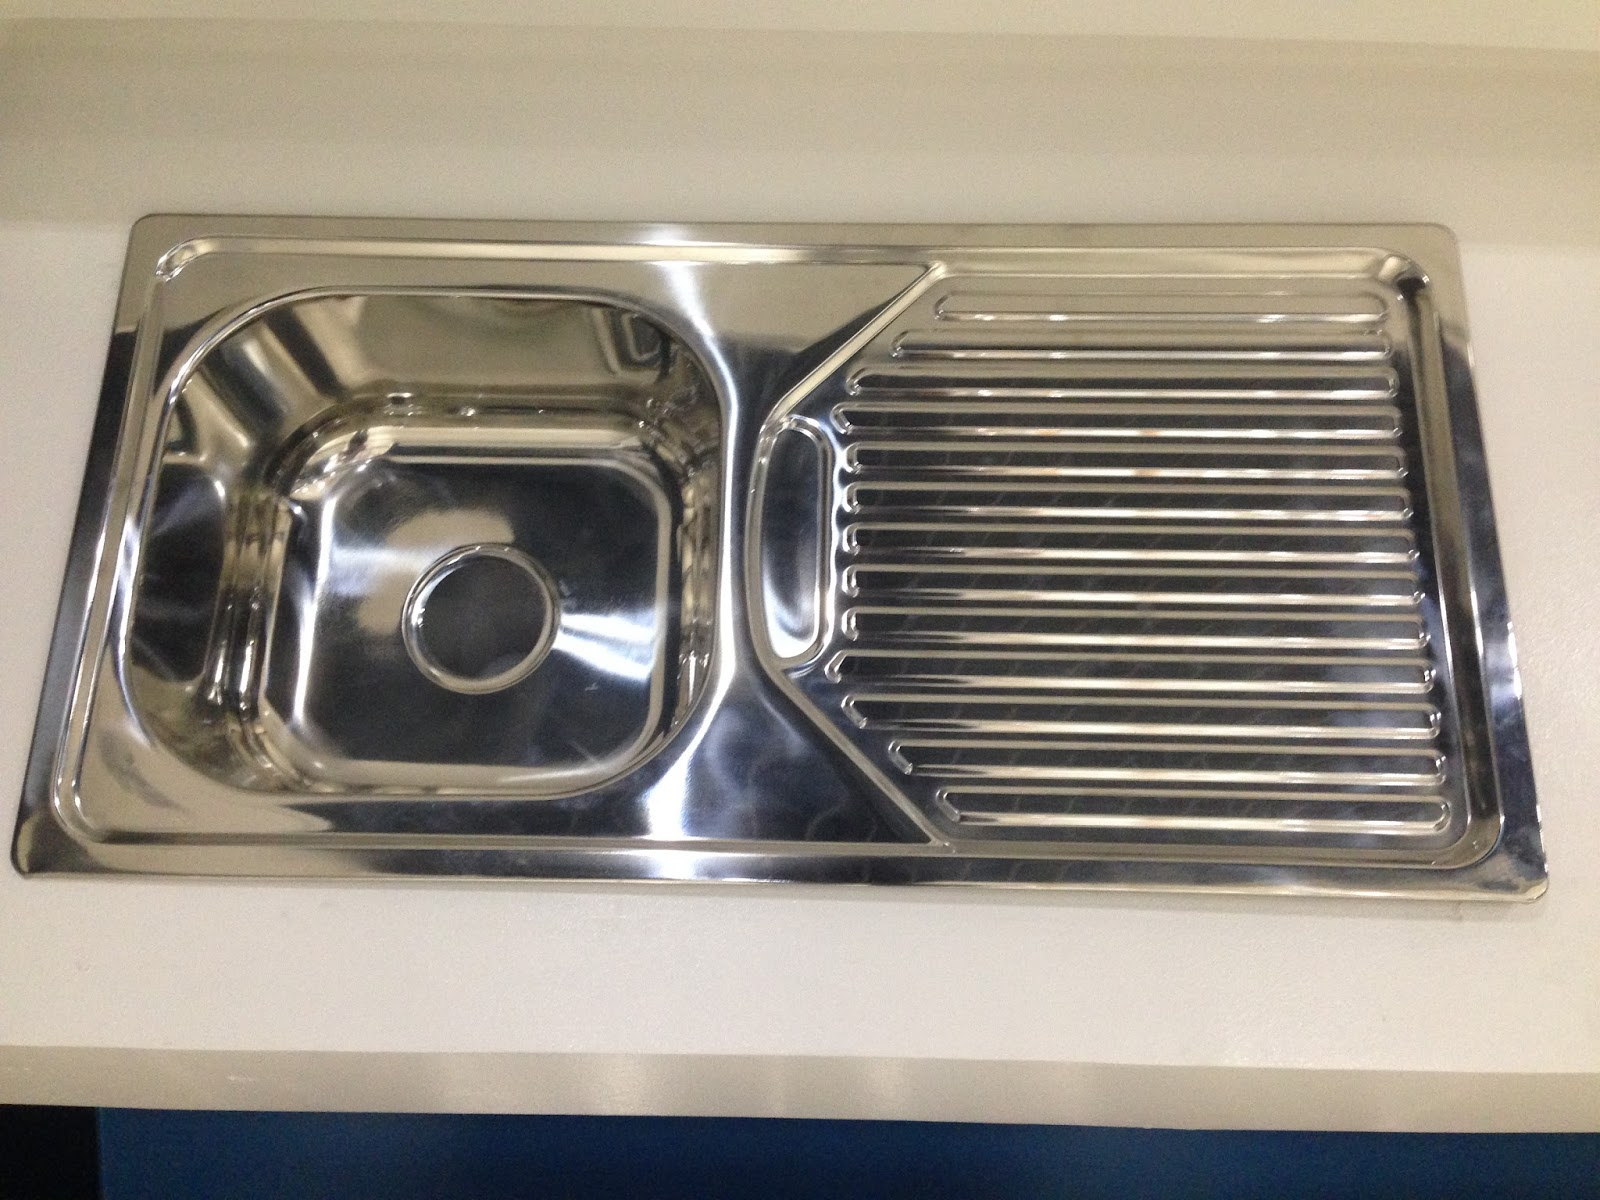 Stainless Steel Kitchen Sink Manufacturer: Stainless Steel Kitchen ...